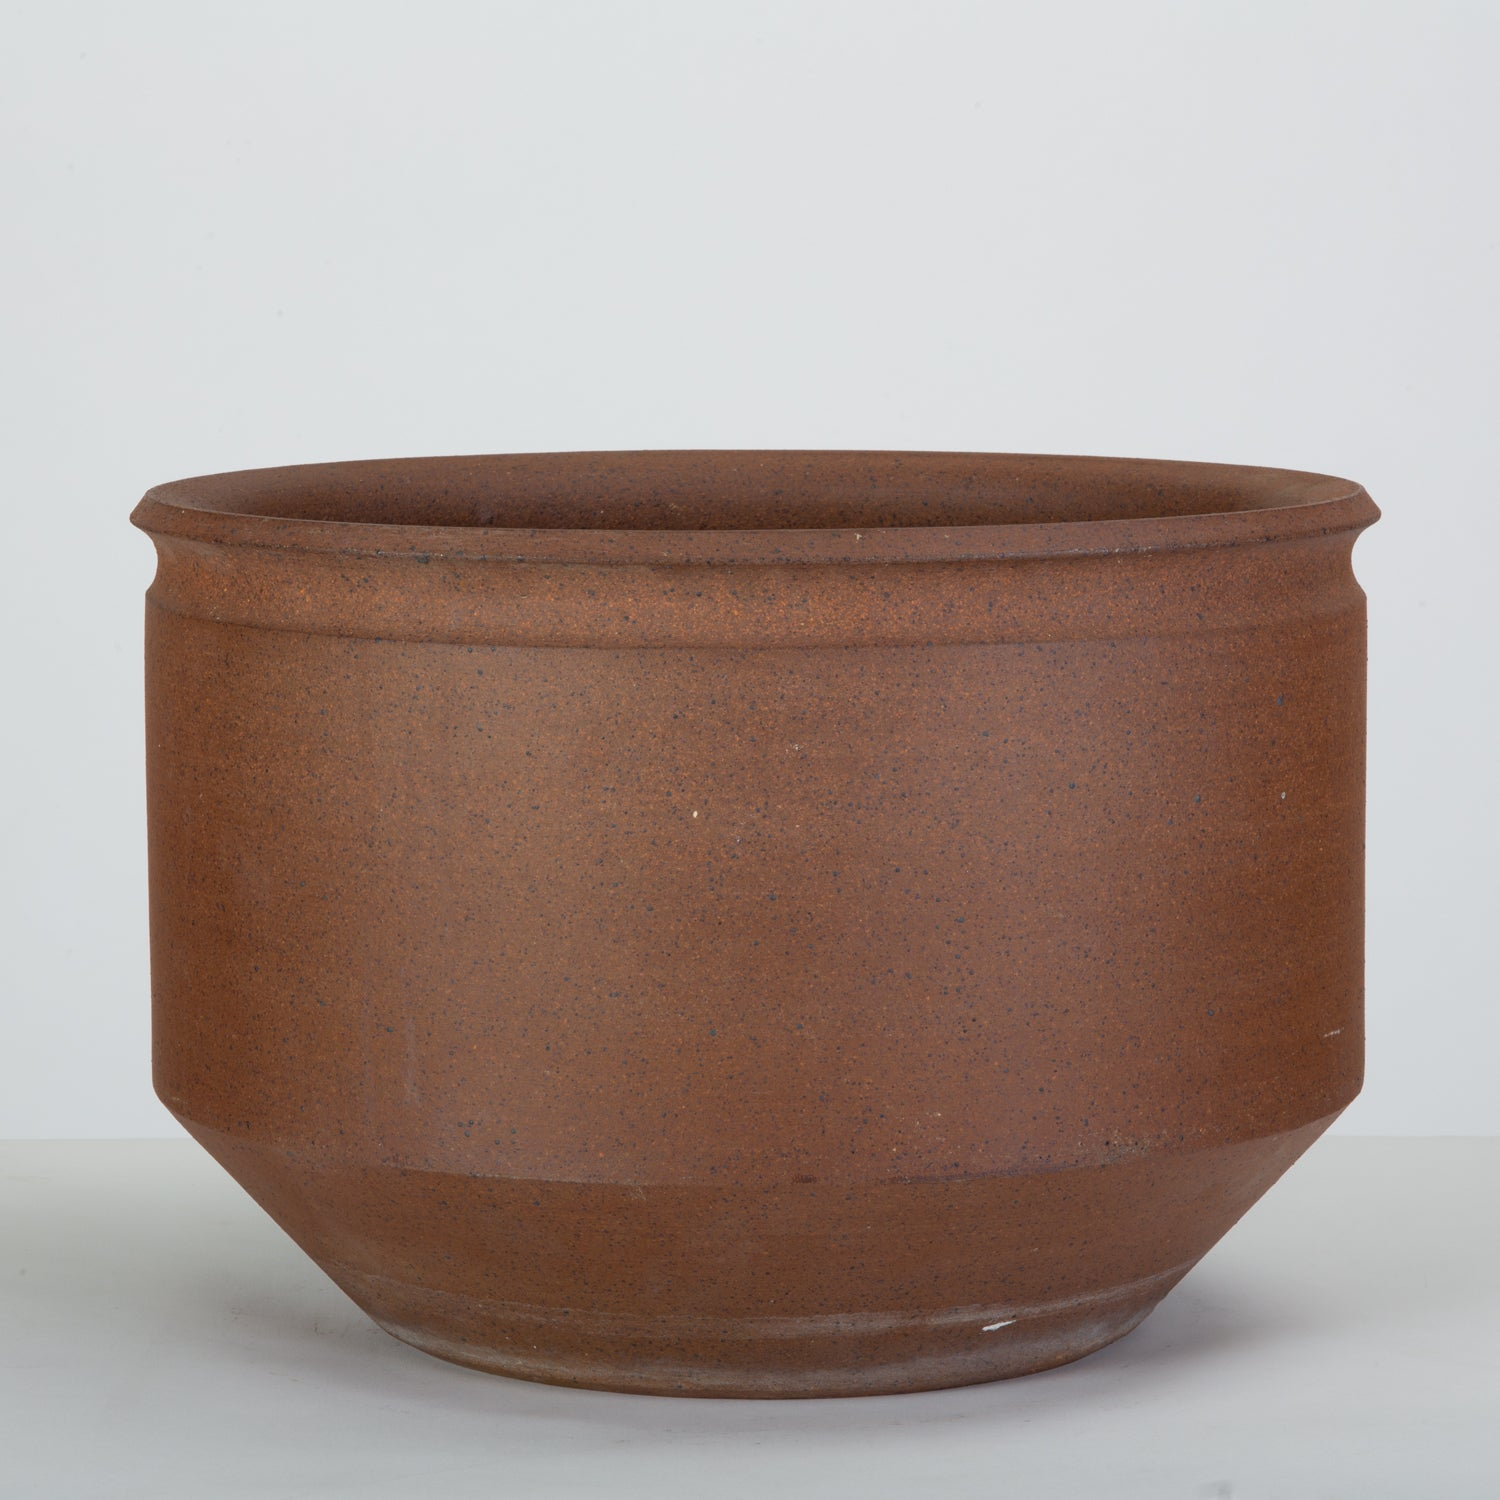 Pair of Unscored Natural Stoneware Planters by David Cressey & Robert Maxwell for Earthgender